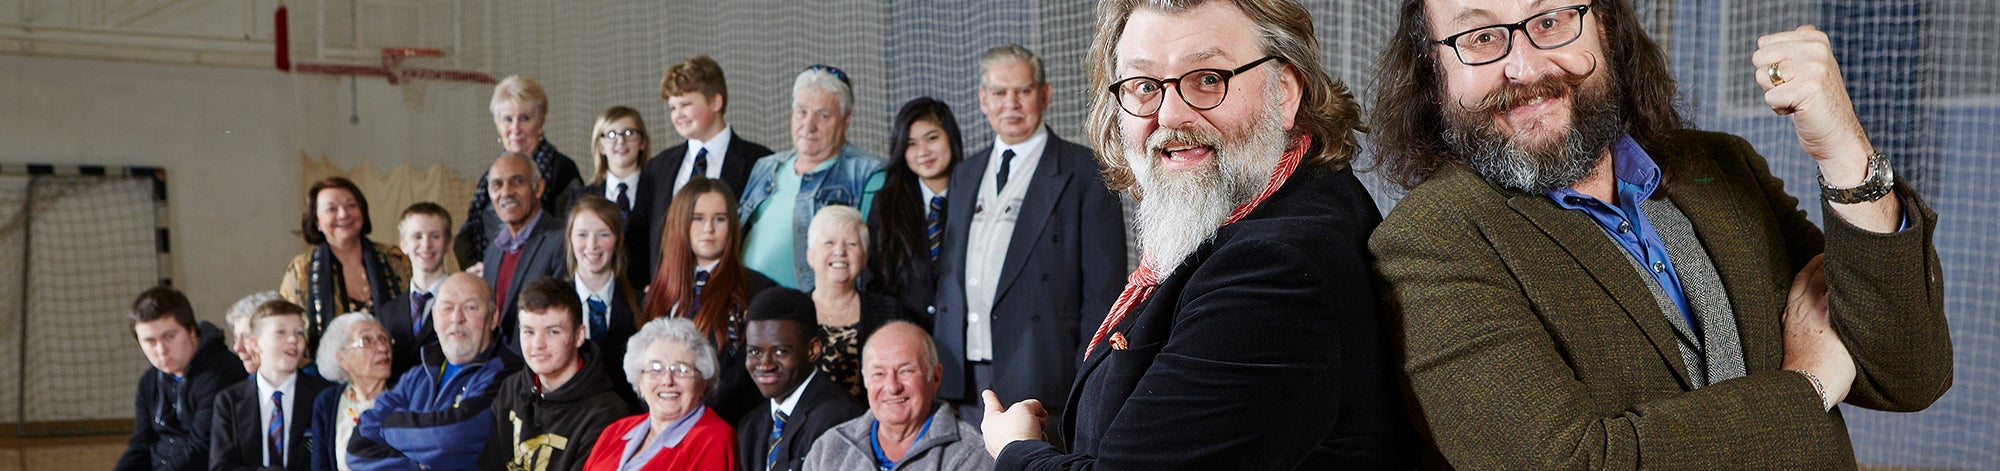 Old School with The Hairy Bikers. Hairy Bikers standing with school